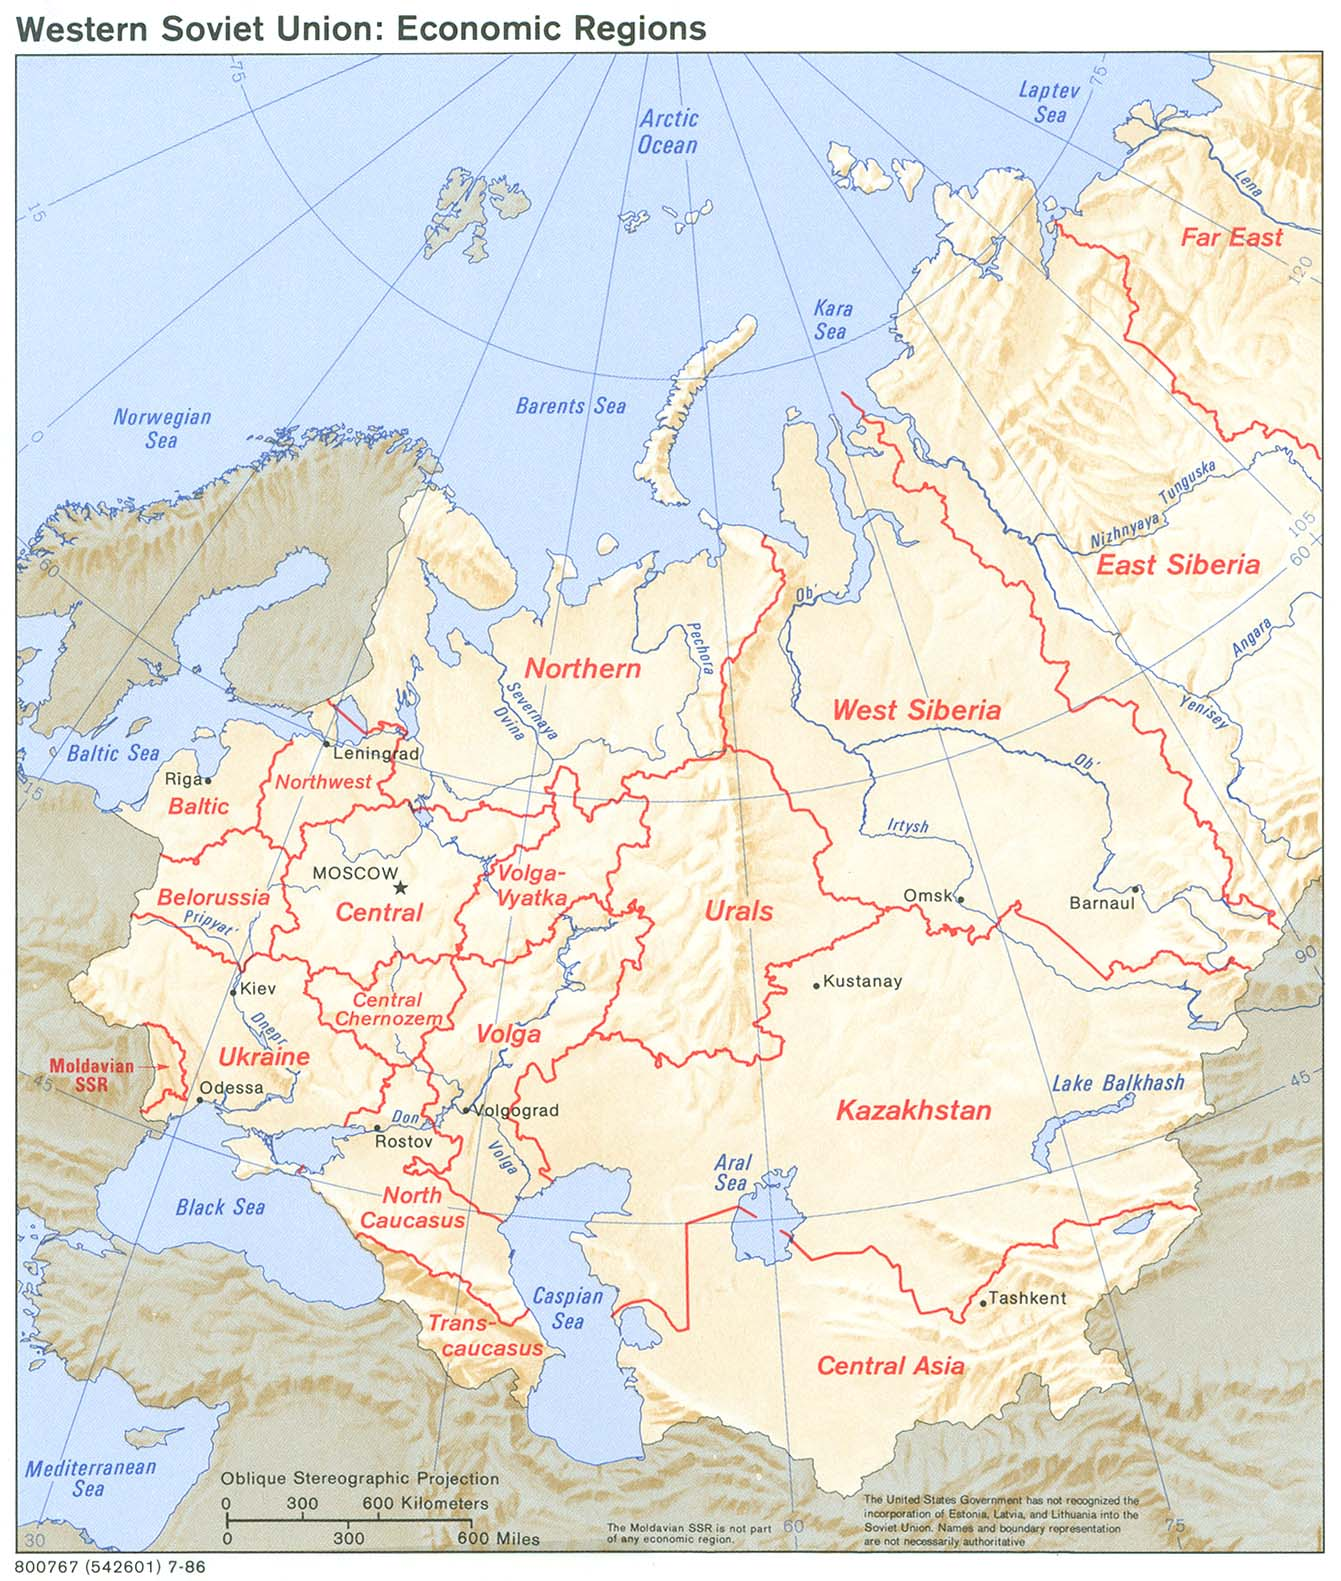 Russia and the former soviet republics maps perry castaeda map soviet union western economic regions gumiabroncs Image collections